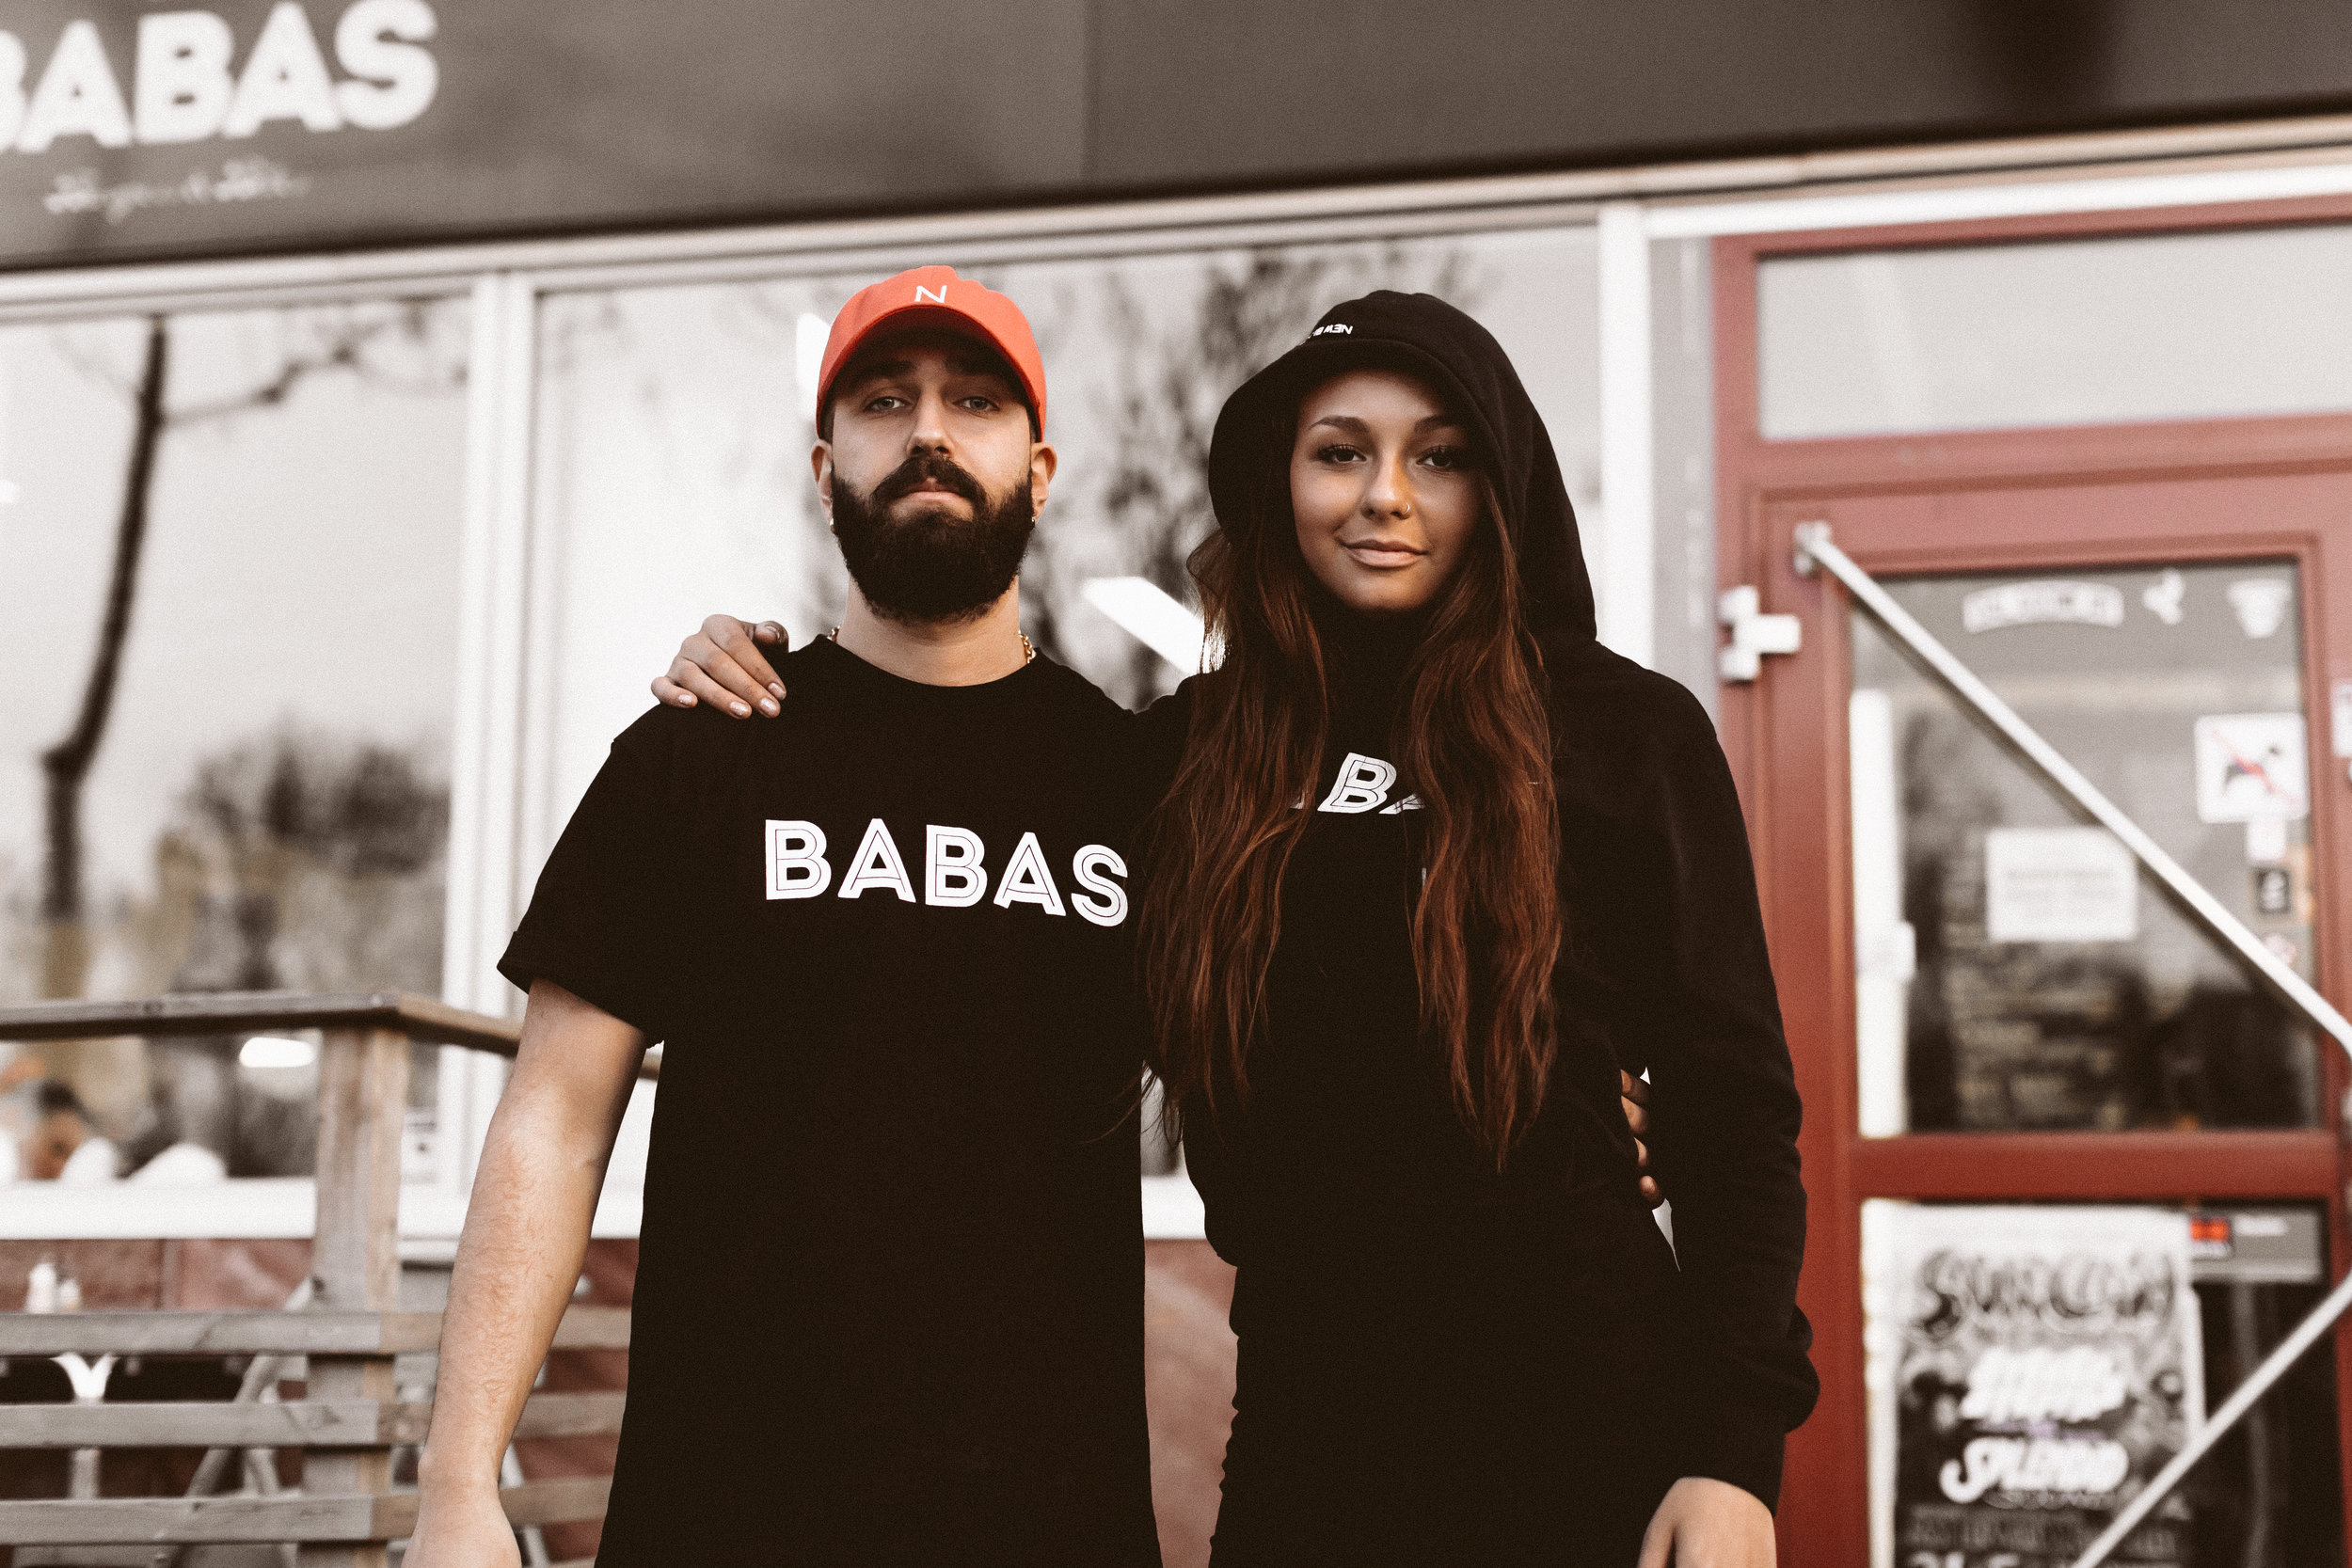 + PROJECTS +BABAS X NEW BLACK - The legendary burger place BABAS has made a collab with the Swedish street wear brand NEW BLACK. So now you will be able to buy tees & Hoodies at BABAS in Högdalen made by NEW BLACK. And it's a limited edition so hurry up and buy before they are gone. But first don't forget to check out them shots.+ Posted May 2019 +